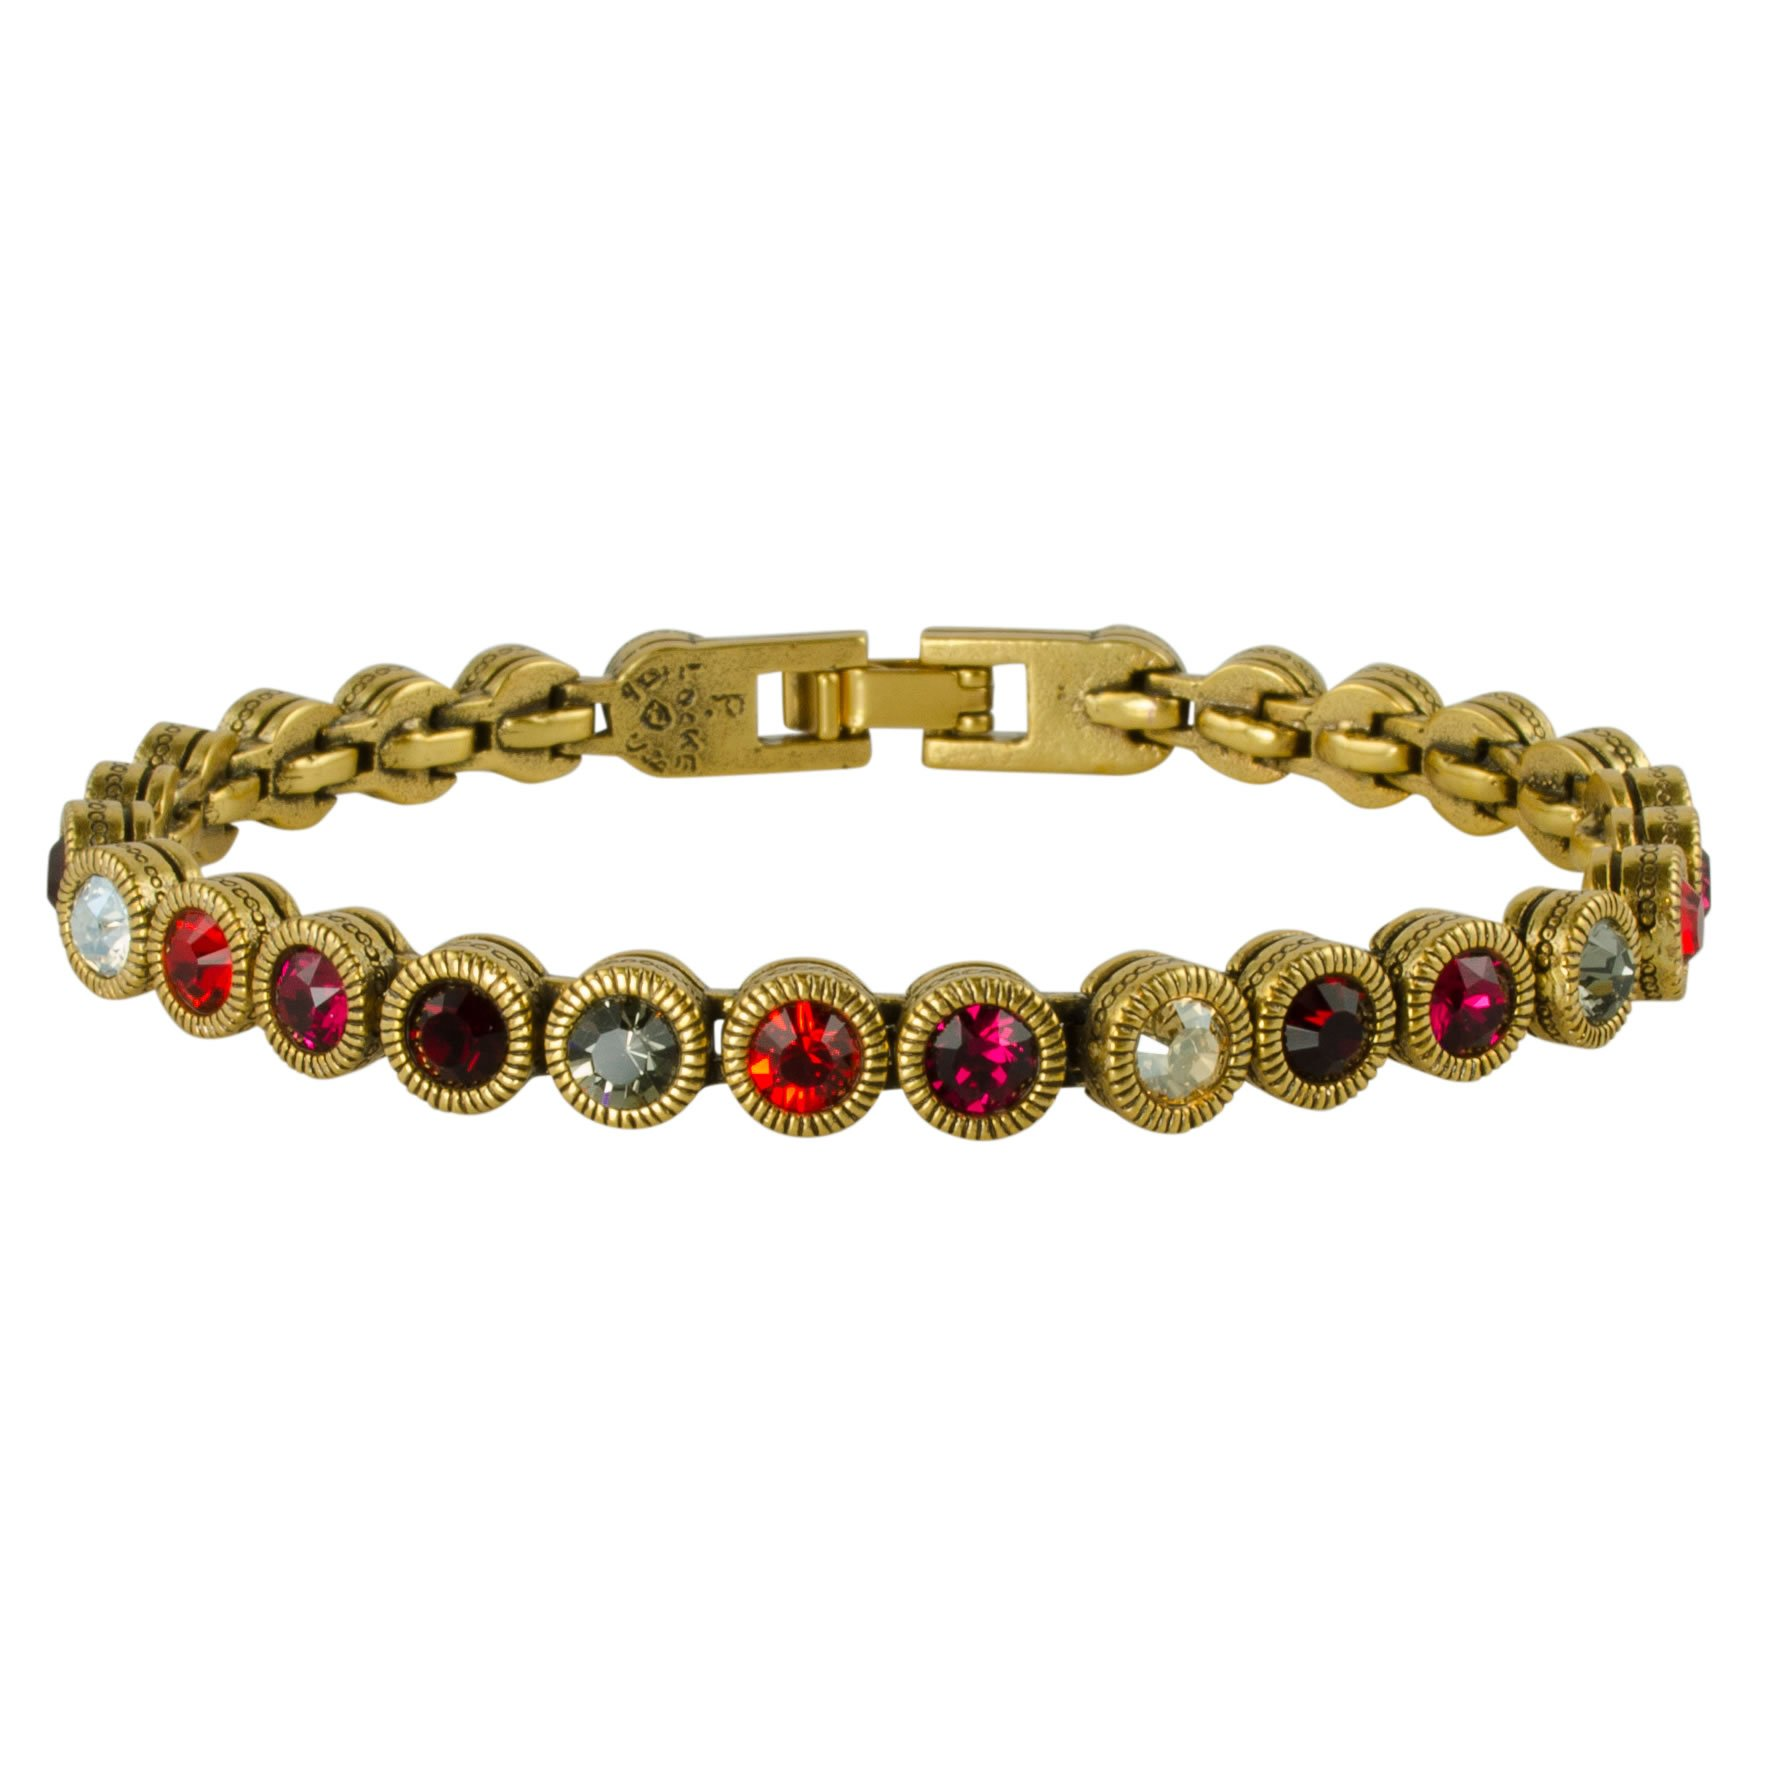 Patricia Locke Game, Set, Match Bracelet in Gold, Ravishing Red Color Story